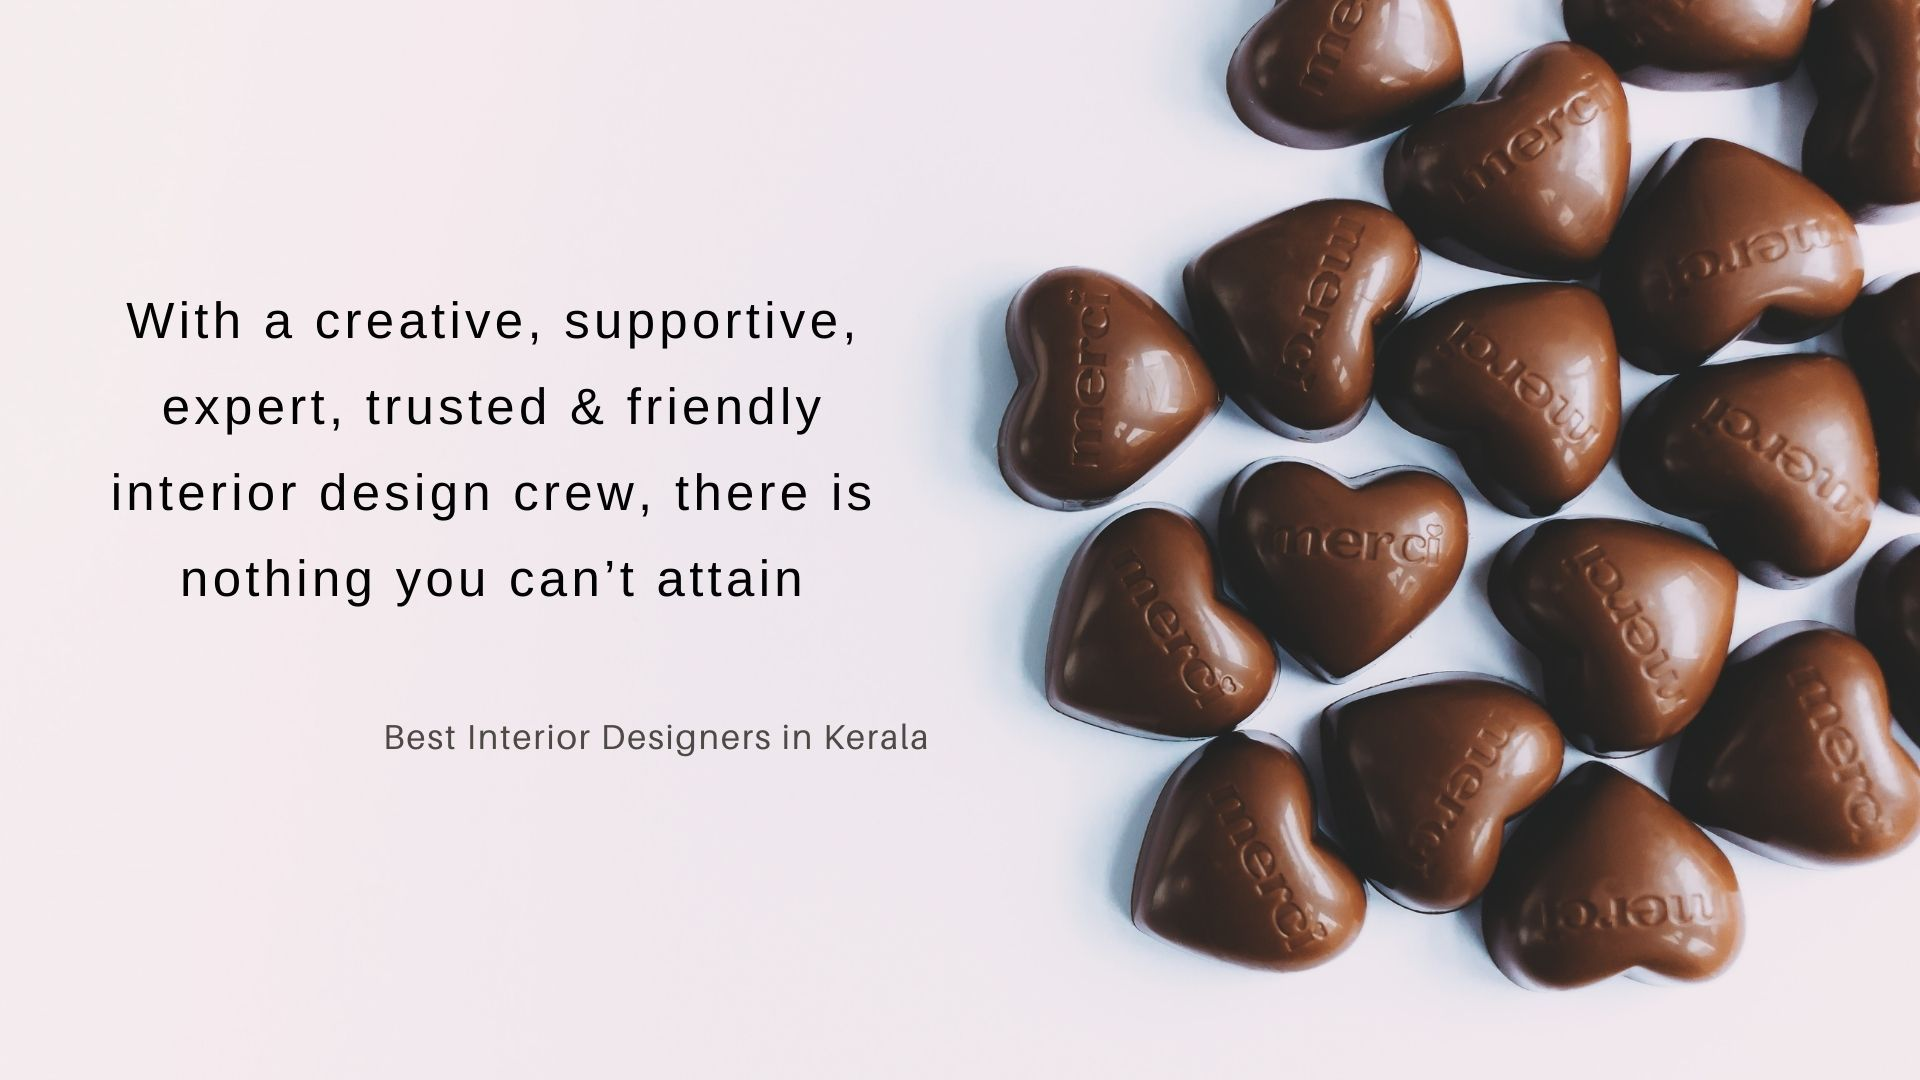 Home Interiors Kerala In 2021 Happy Chocolate Day Happy Chocolate Day Images Chocolate Day Happy chocolate day friends in hindi